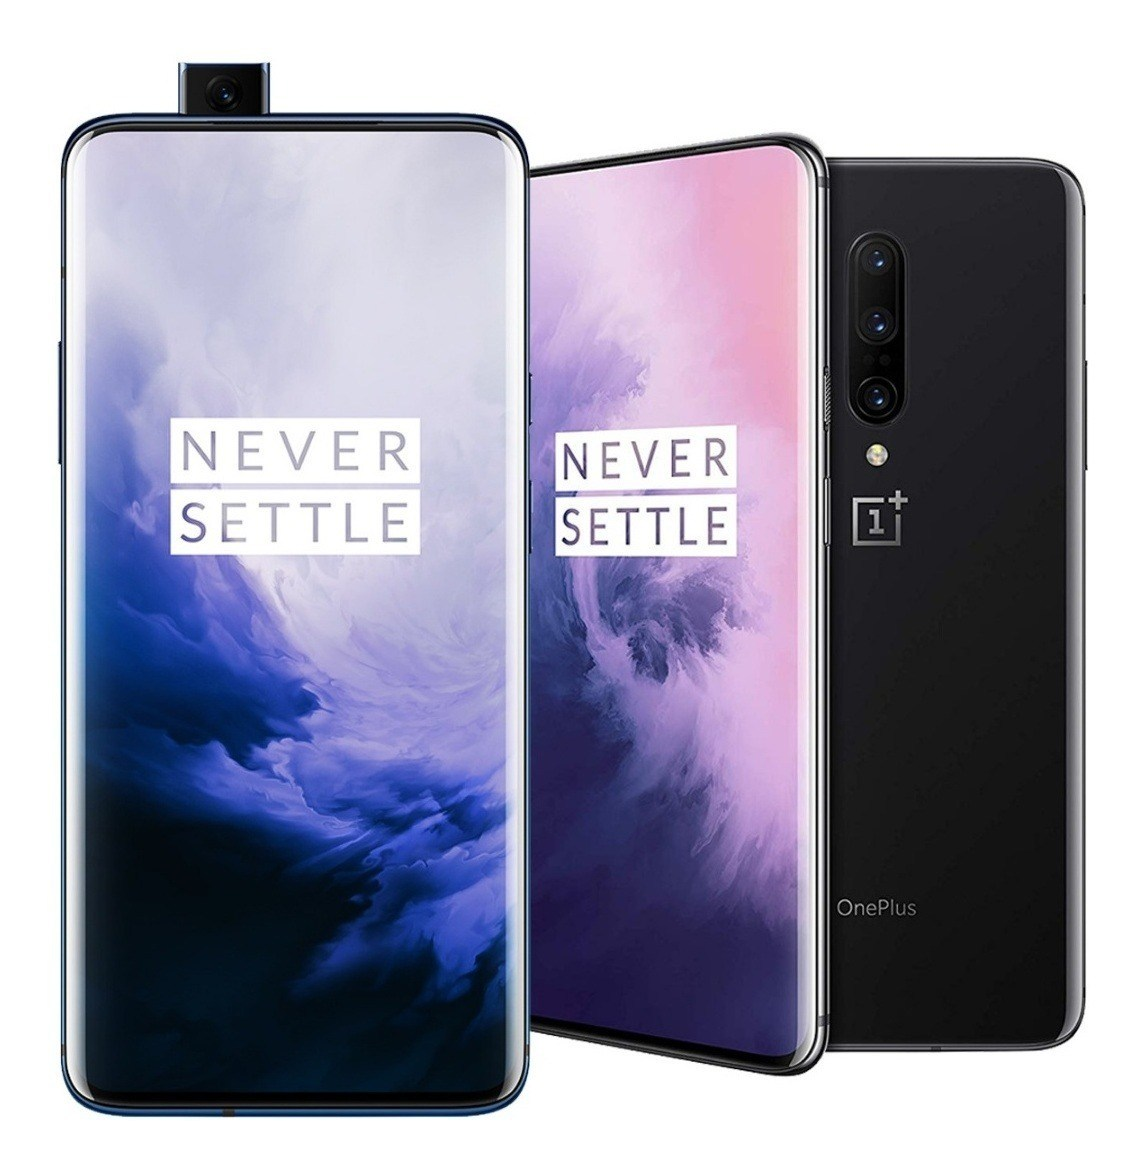 Filtered some supposed real images of OnePlus 7T Pro